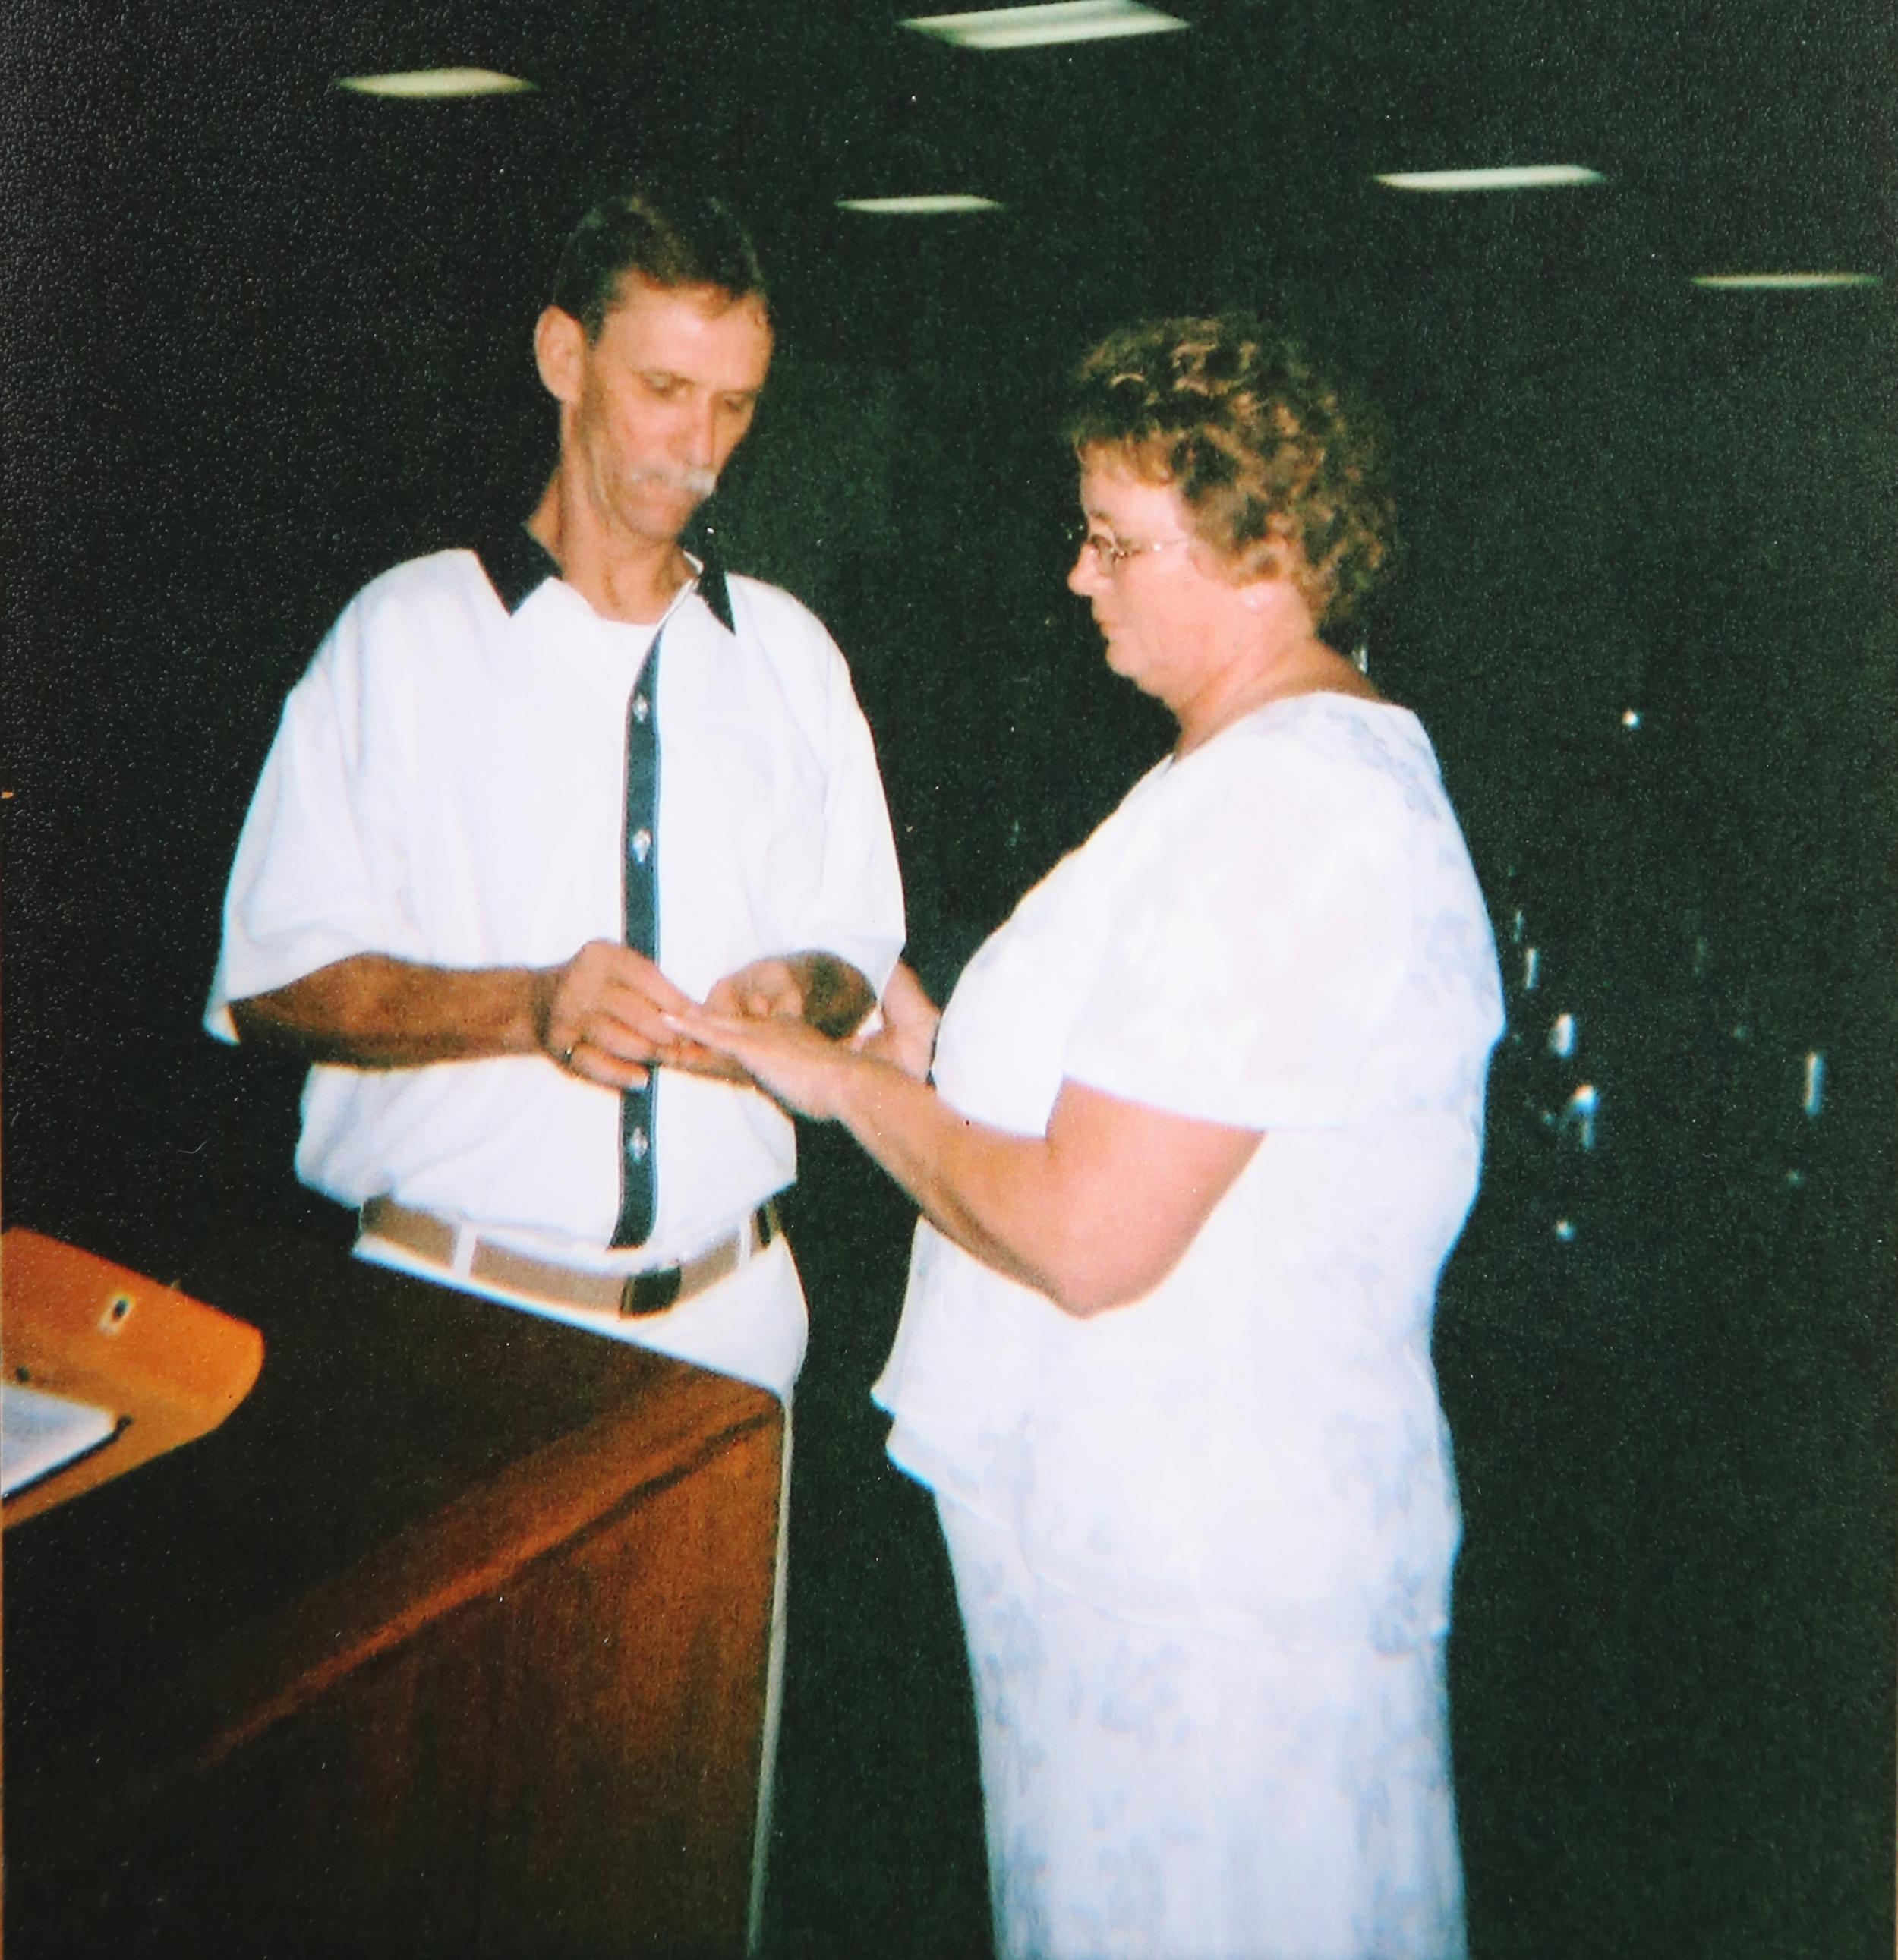 Dennis and Brenda Perry married in a small ceremony at the prison.